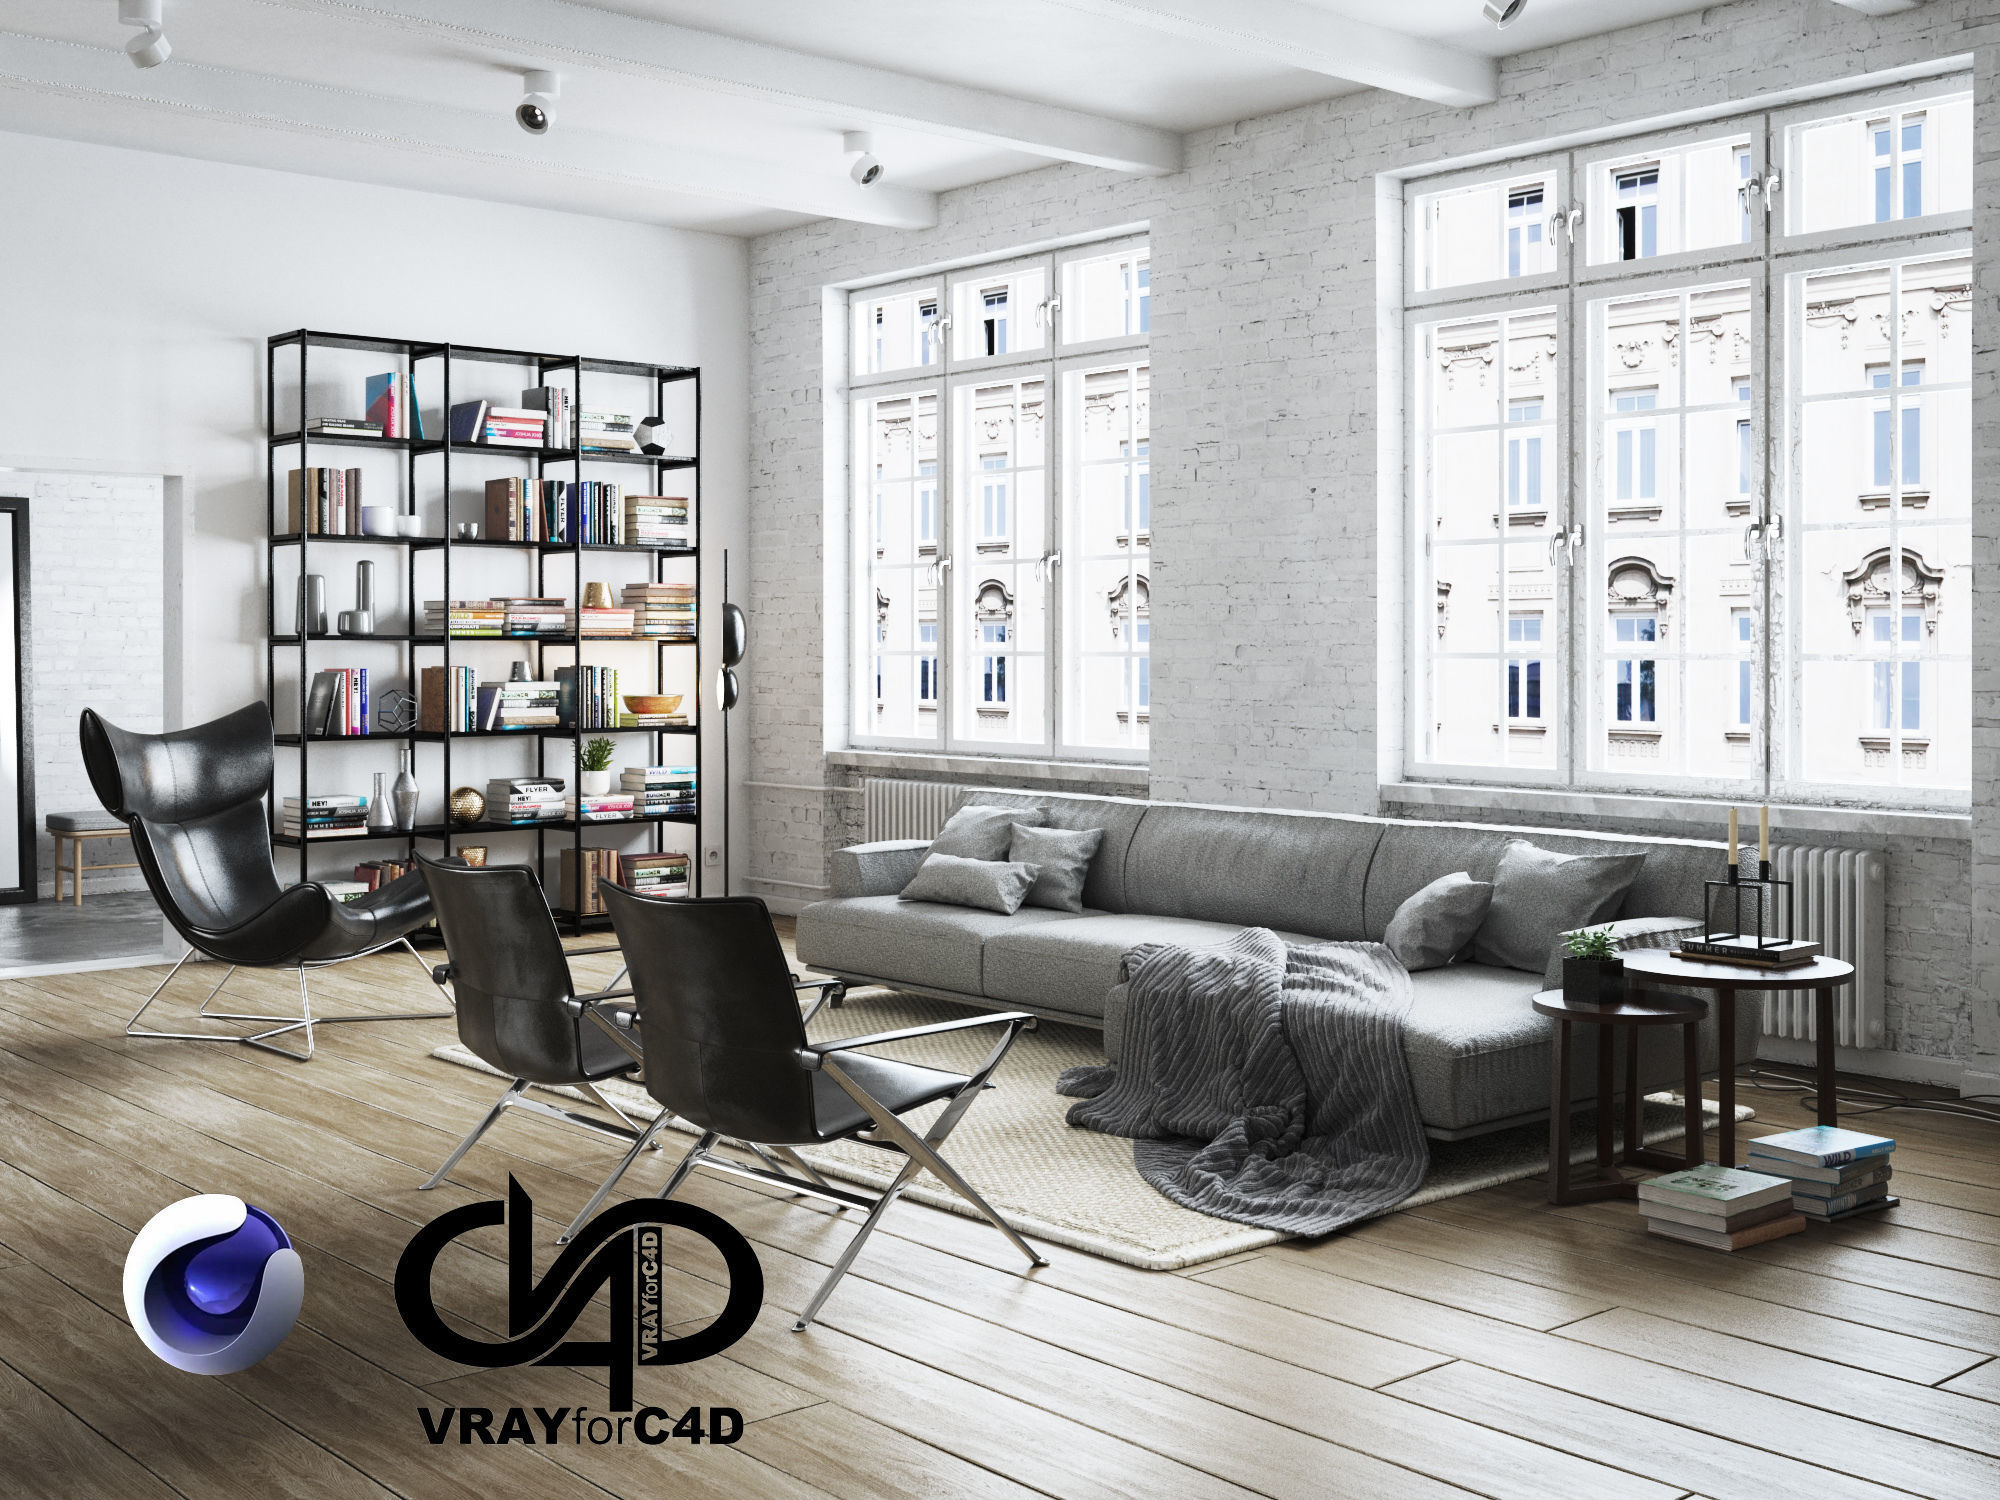 Living Room Interior Scene for Cinema 4D and Vray | 3D model